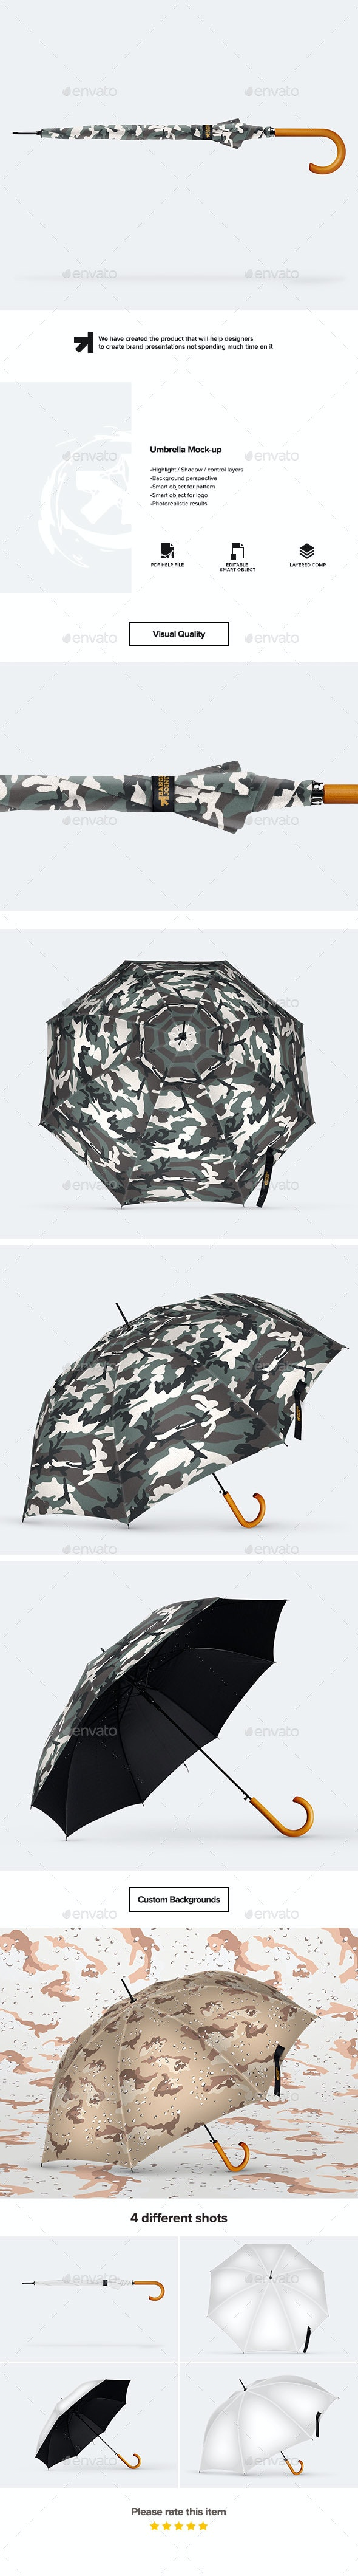 Umbrella Mockup - Miscellaneous Product Mock-Ups